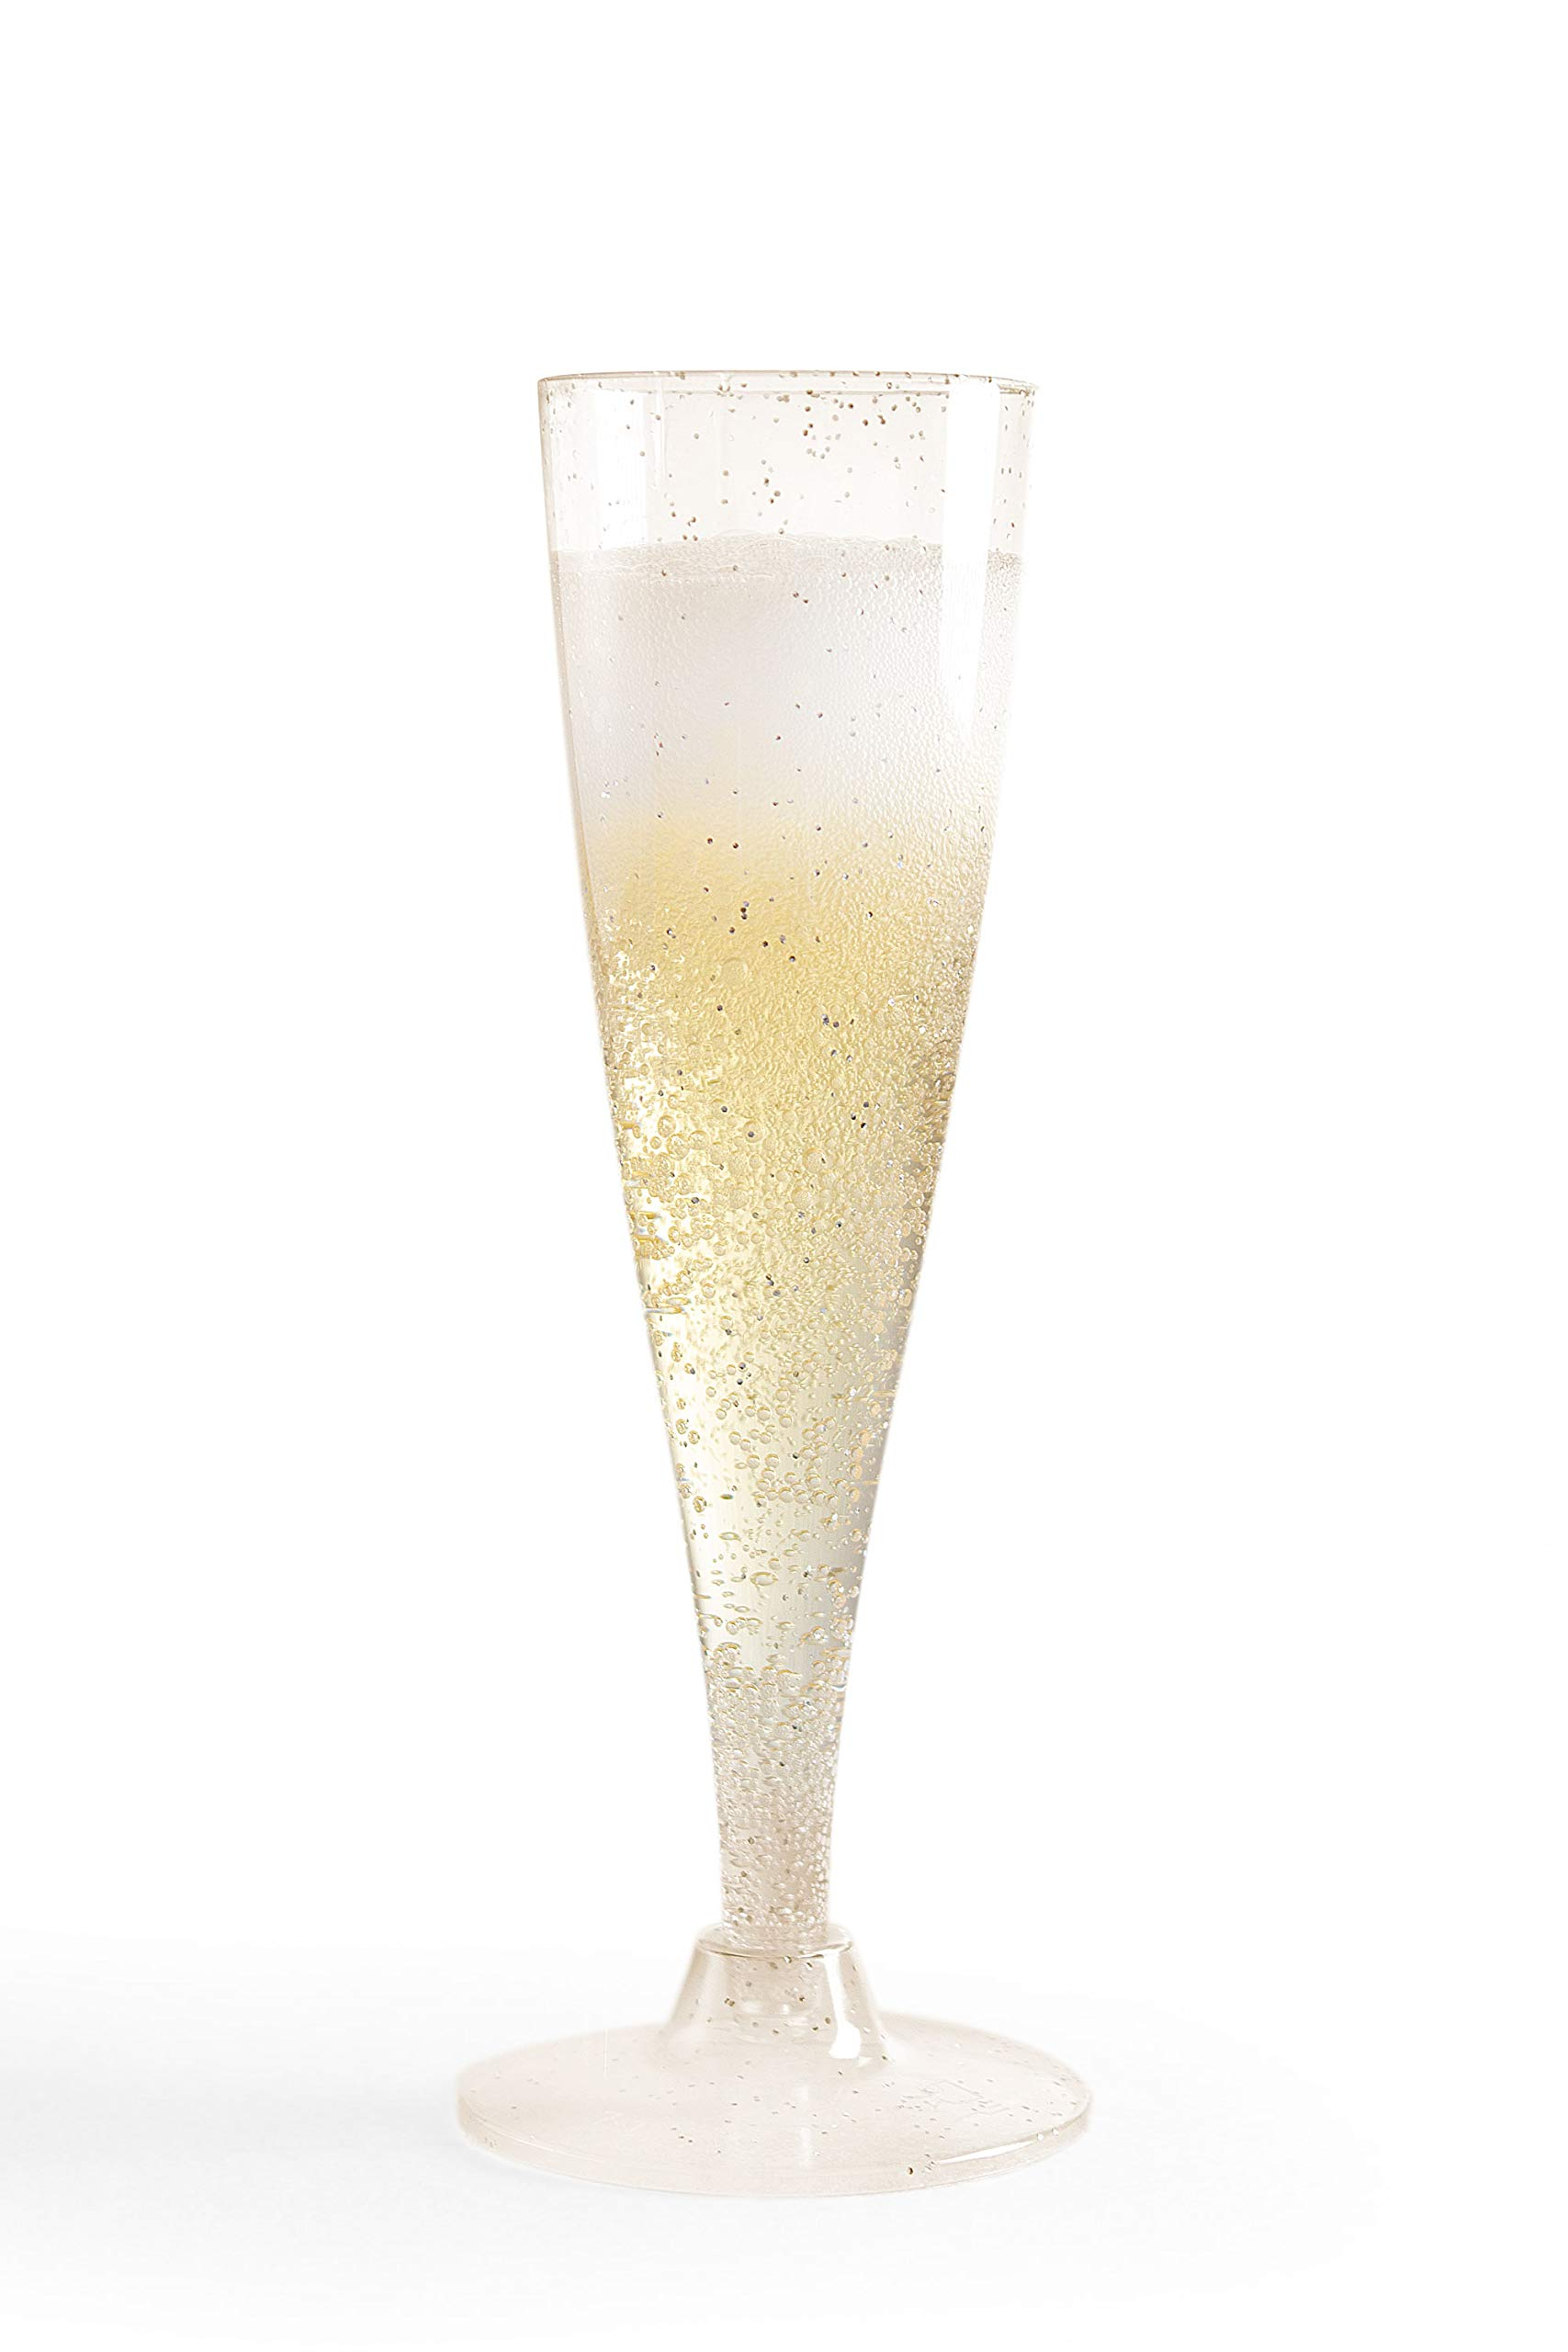 ASK Set of 50 Disposable Gold Glitter Plastic Champagne Flutes Made of Hard Plastic Toasting Clear Glasses – Perfect for…